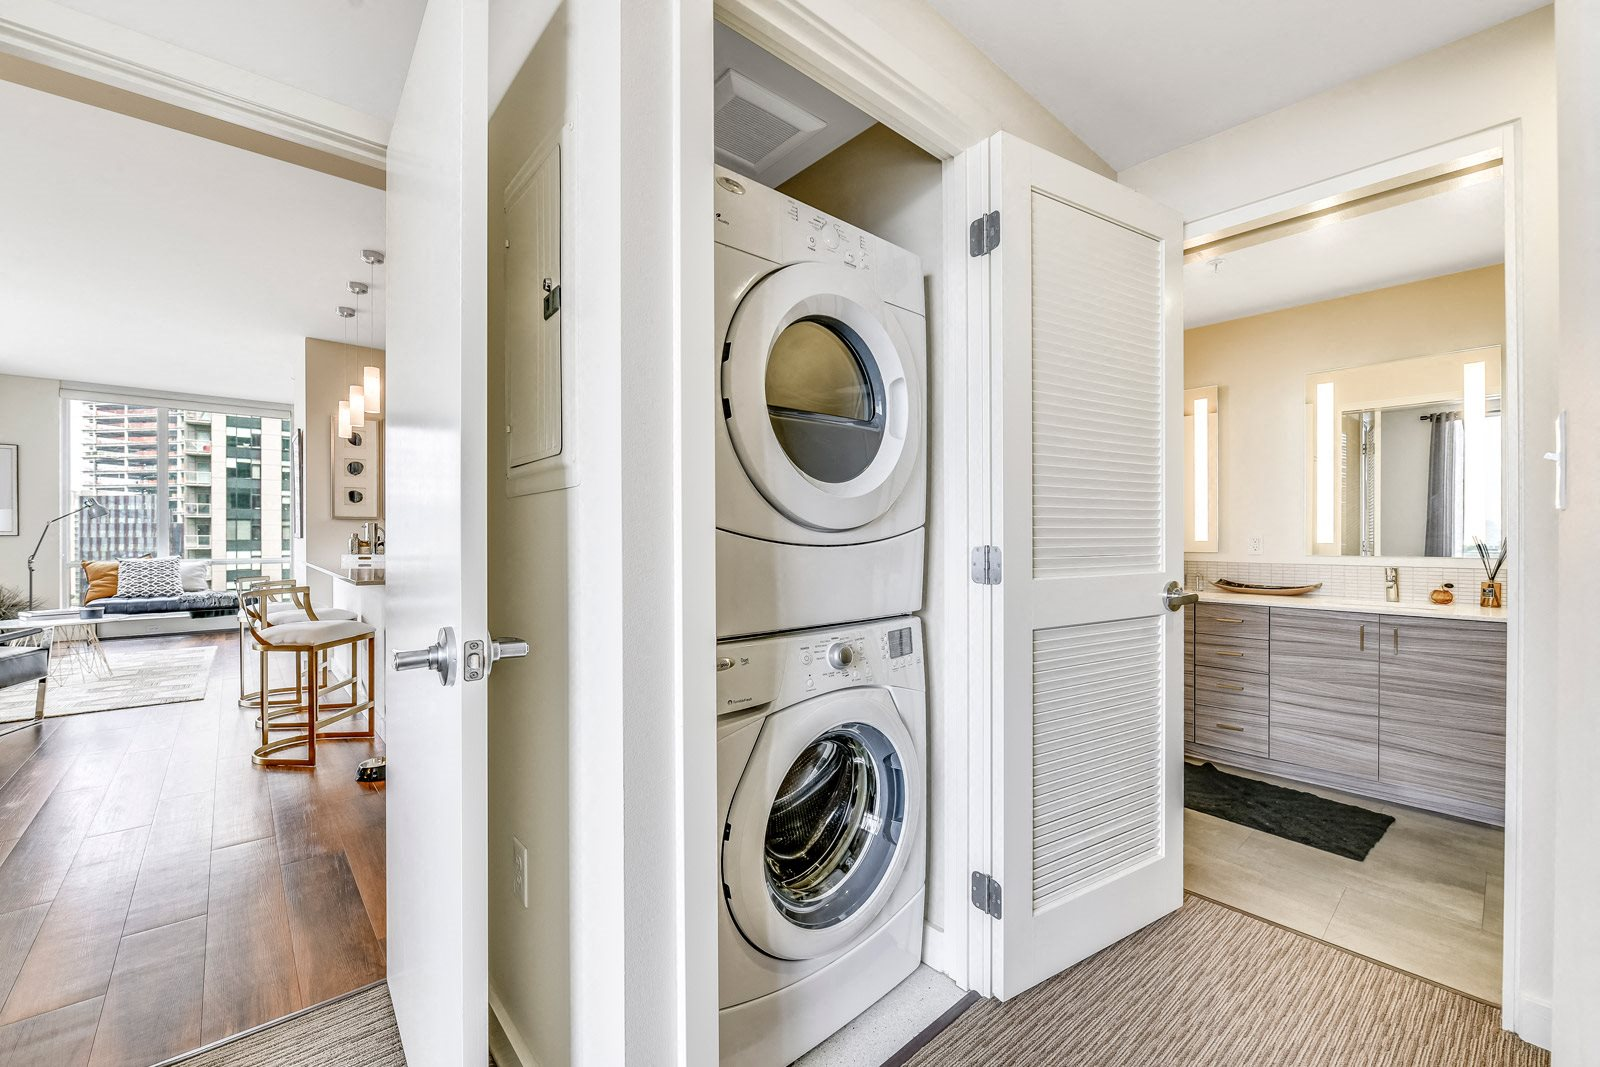 In-Home Washer and Dryer at The Martin, Seattle, Washington